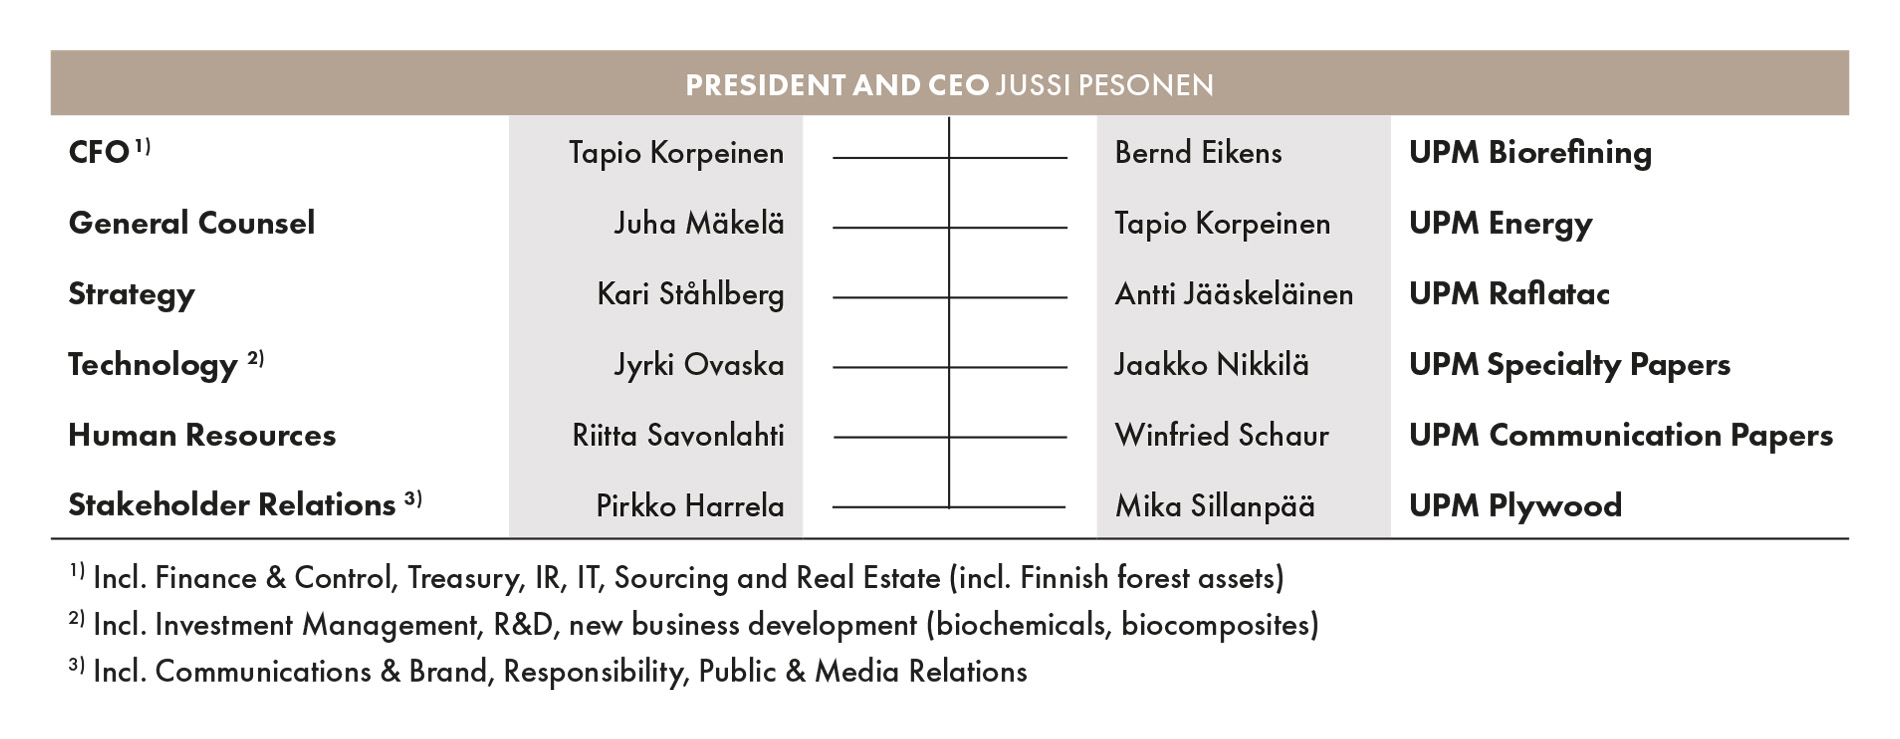 upm-ar19-executive-management-en.jpg